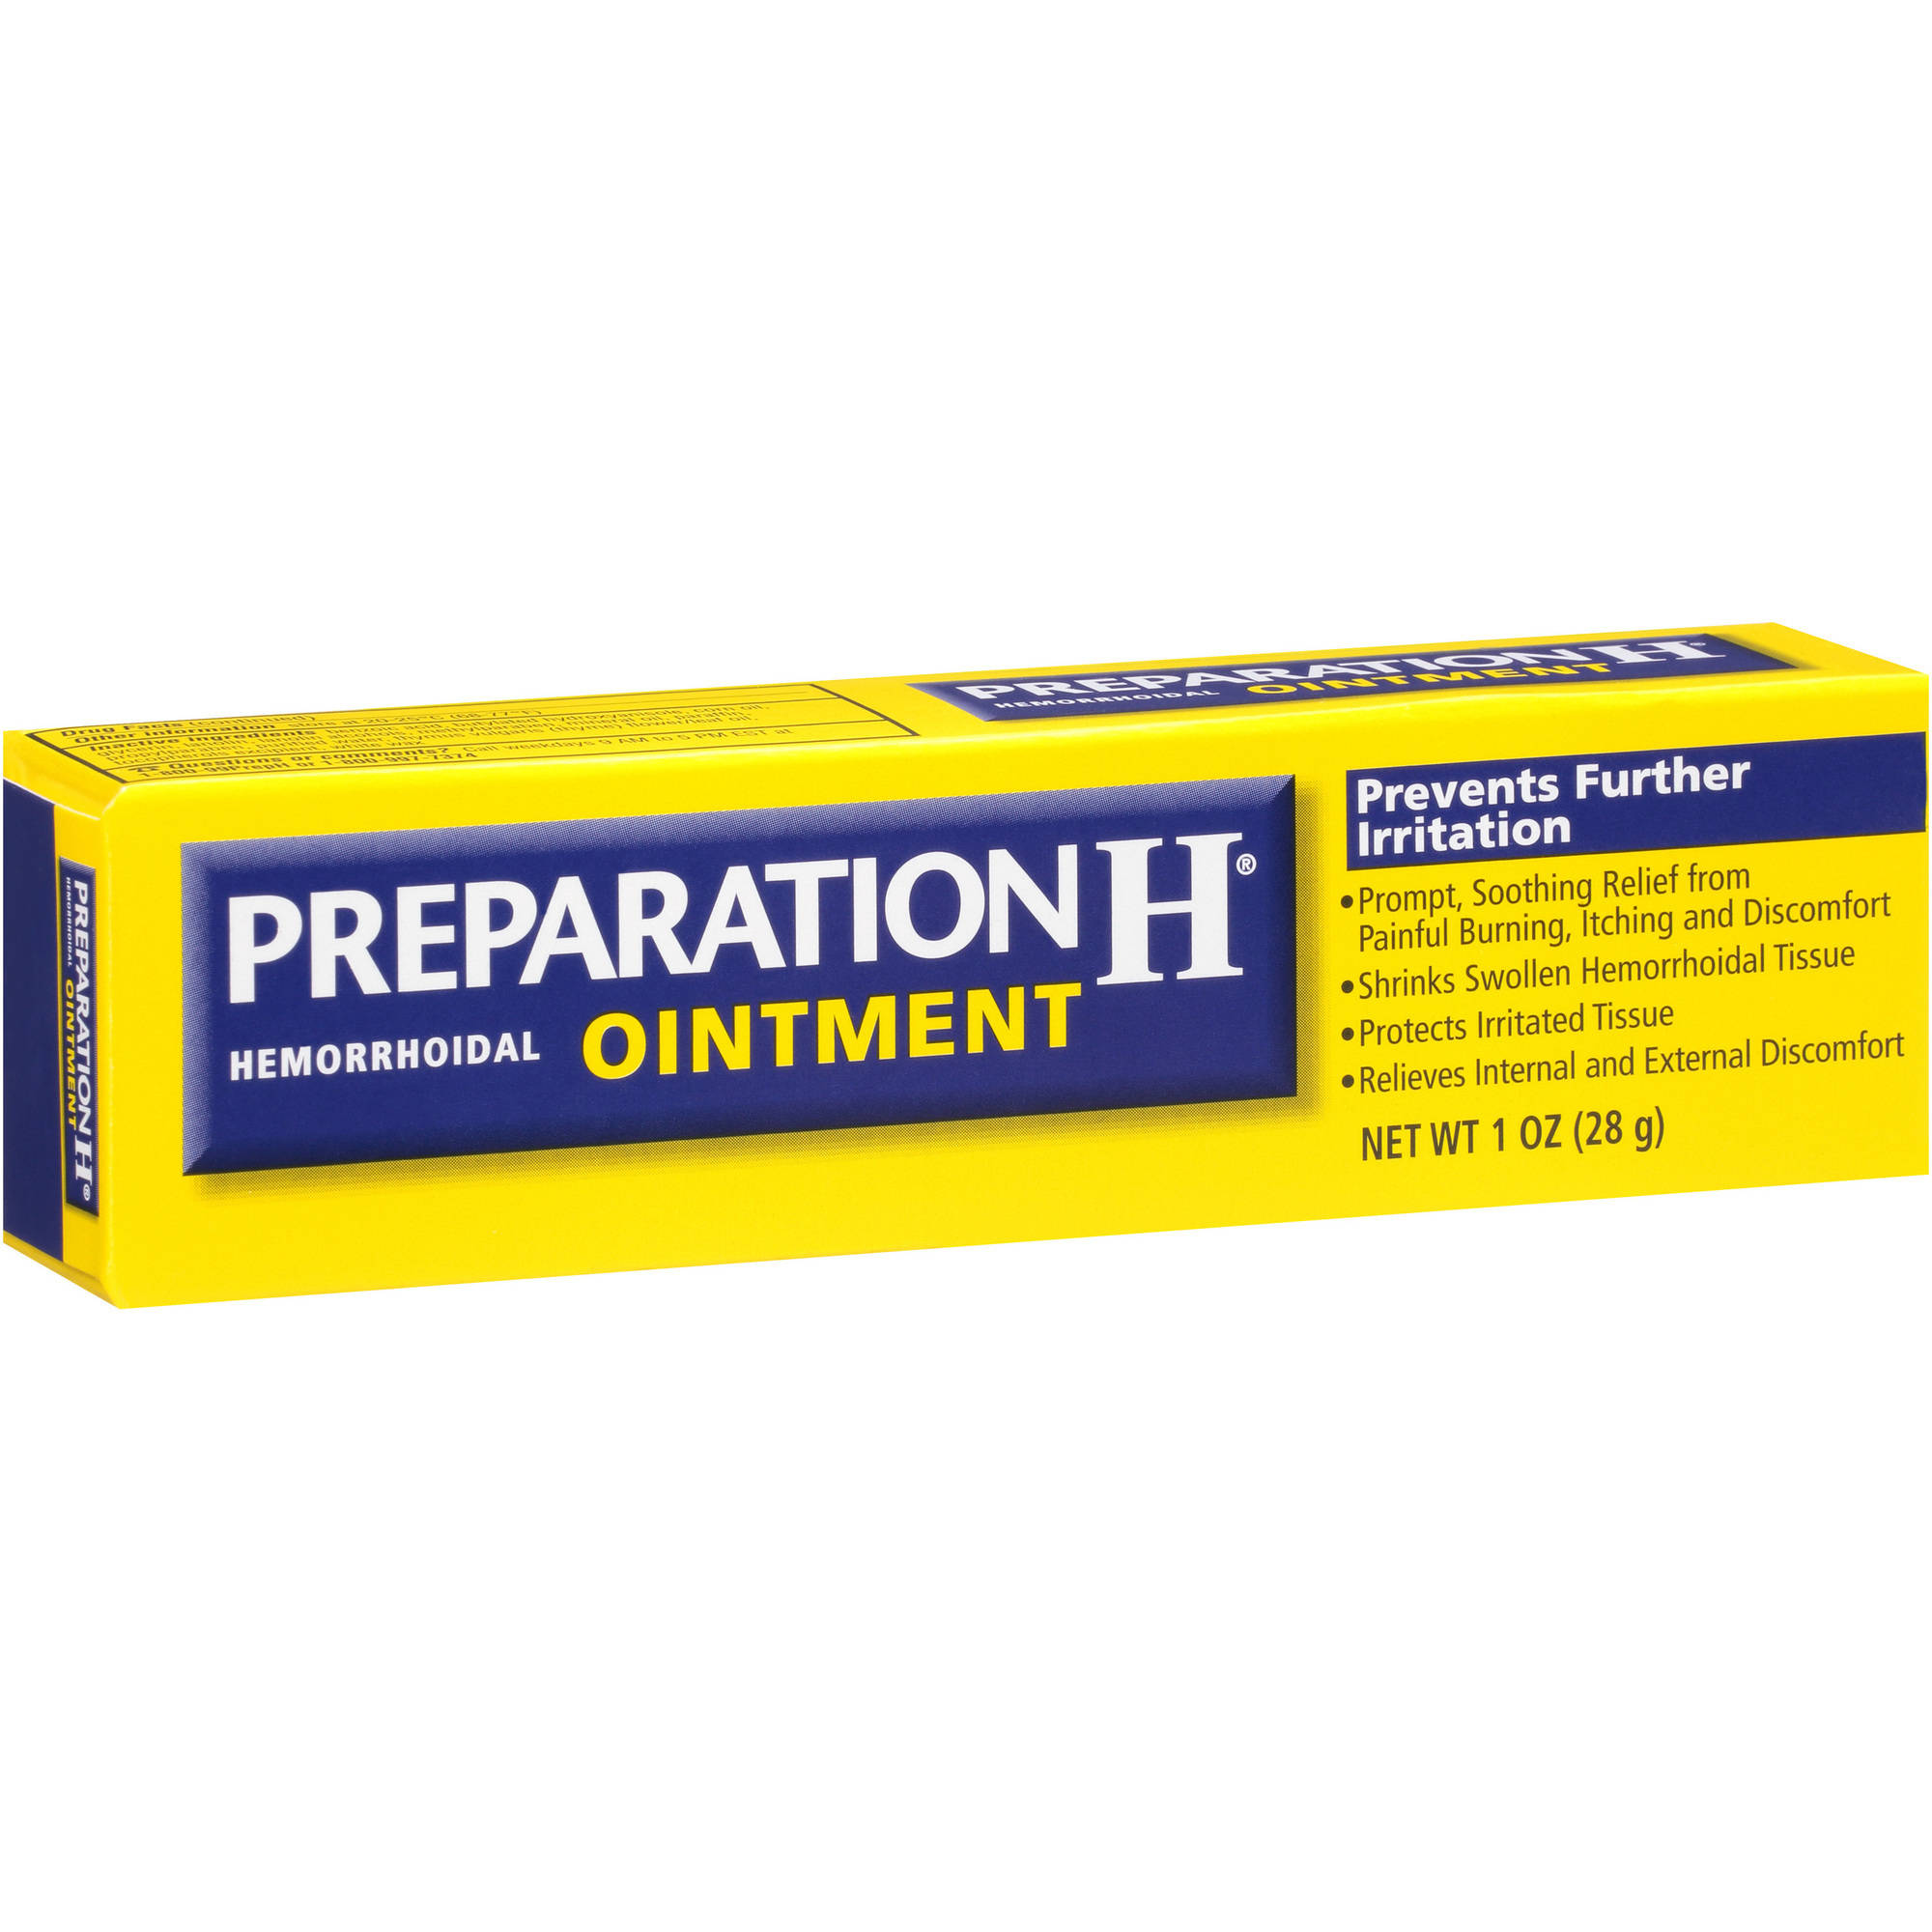 Preparation H Ointment Hemorrhoidal Ointment, 1 oz